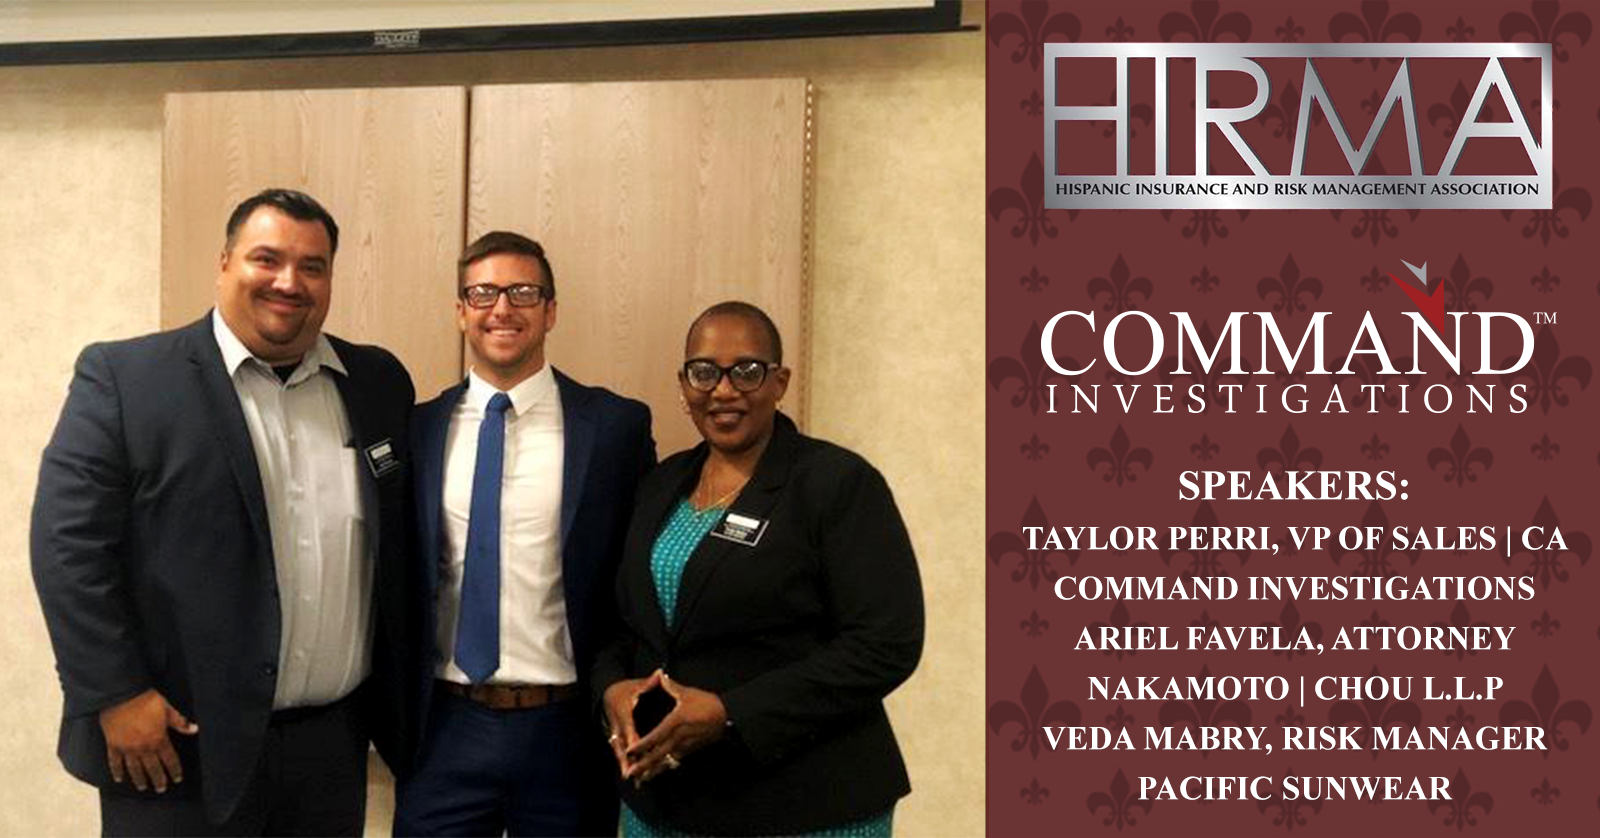 Command's Vice President of Sales, California, joined Ariel Favela, Attorney, and Veda Mabry, Risk Manager for Pacific Sunwear, at a round-table event for the Hispanic Insurance & Risk Management Association (HIRMA) in Orange, California.